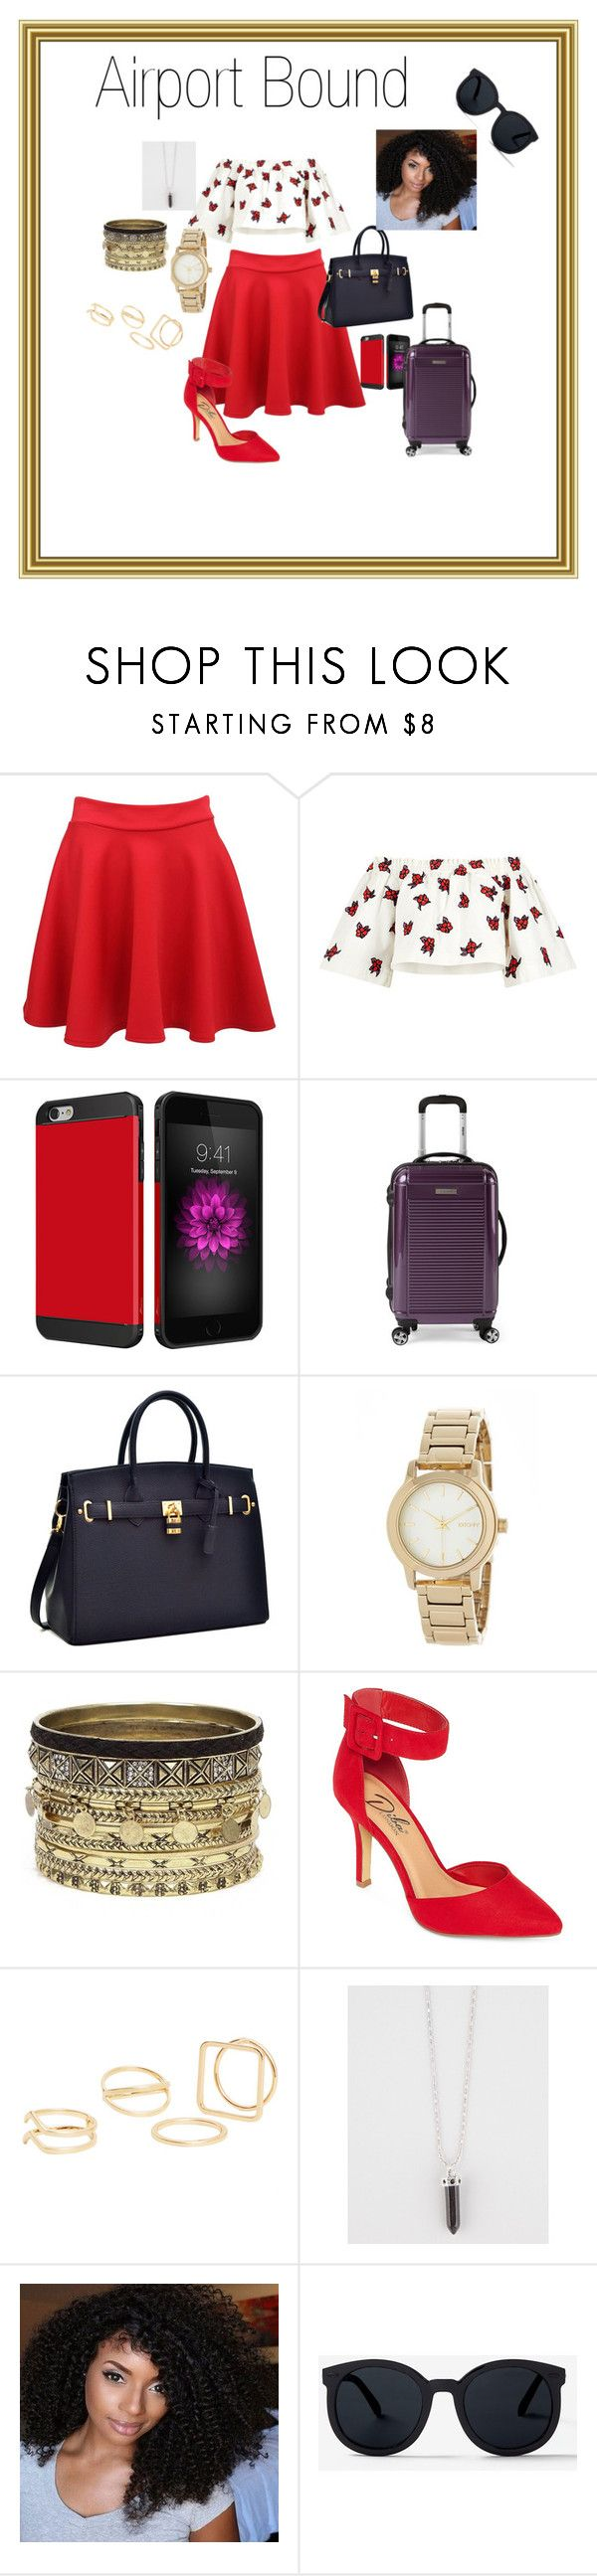 """Last minute Weekend Getaway"" by constance-dangerfield on Polyvore featuring Pilot, House of Holland, DKNY, Daytrip, Diba, MANGO and Full Tilt"